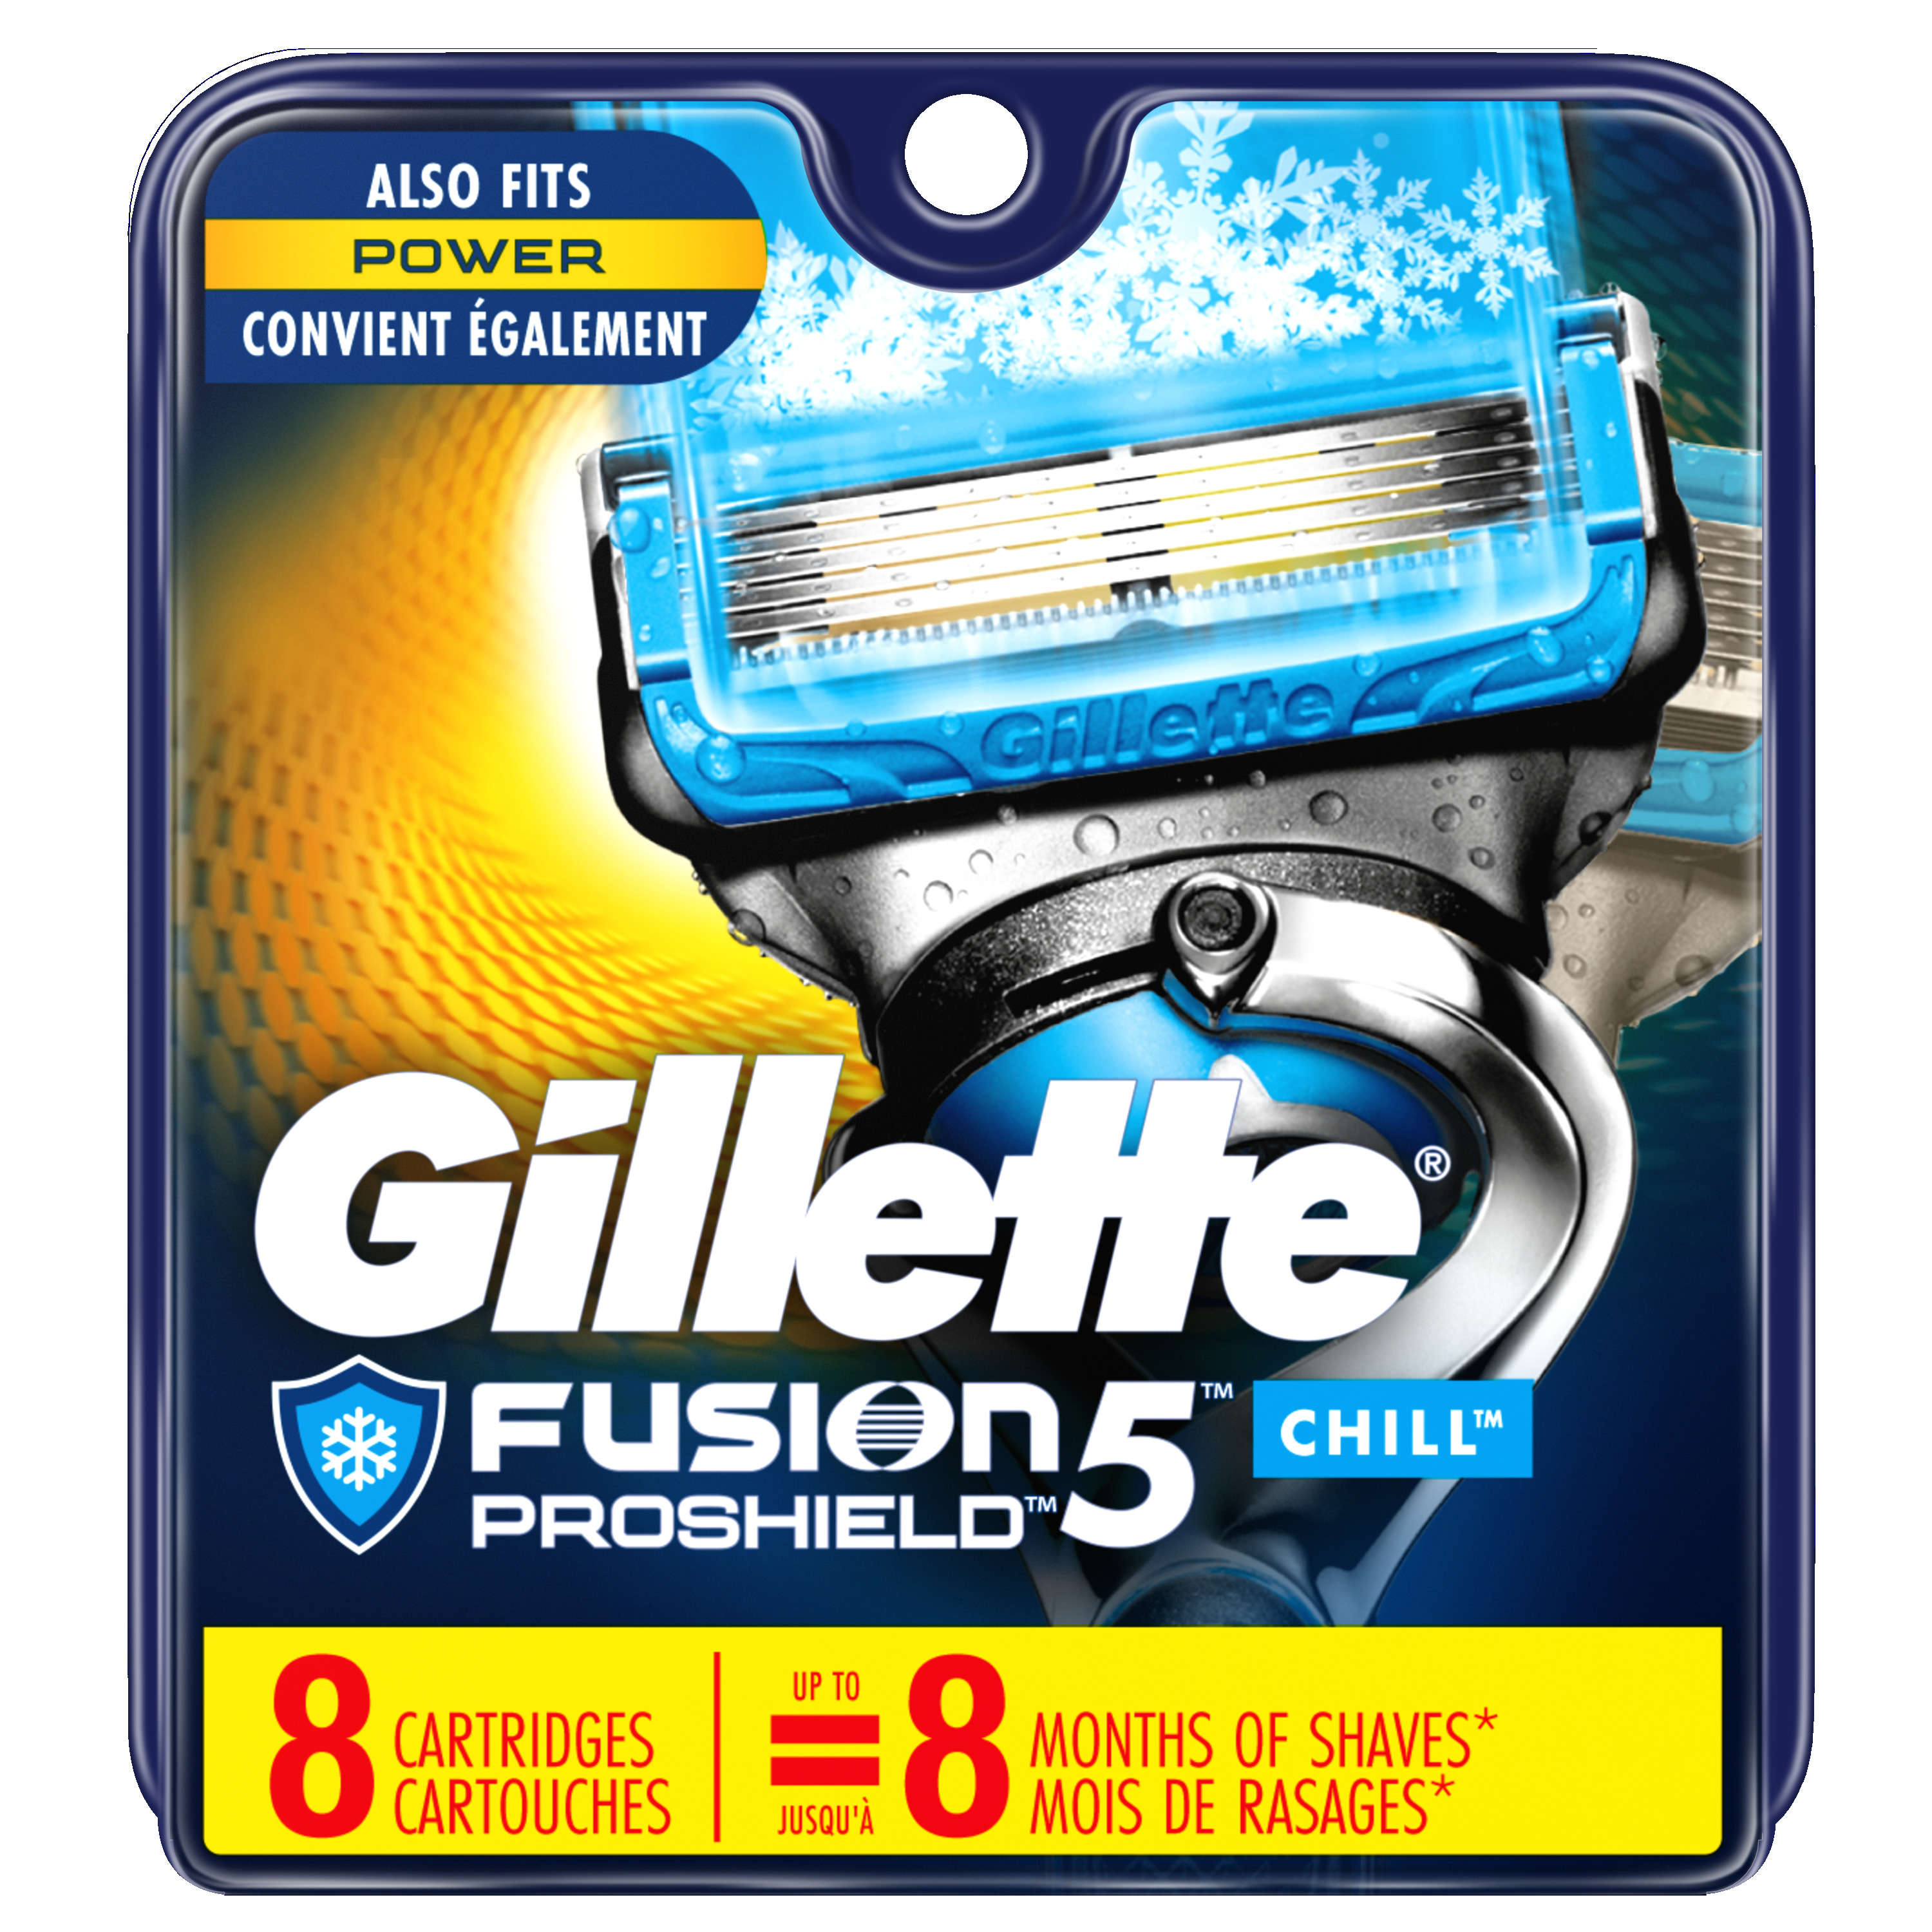 Gillette Fusion5 ProShield Chill Men's Razor Blades - 8 Refills